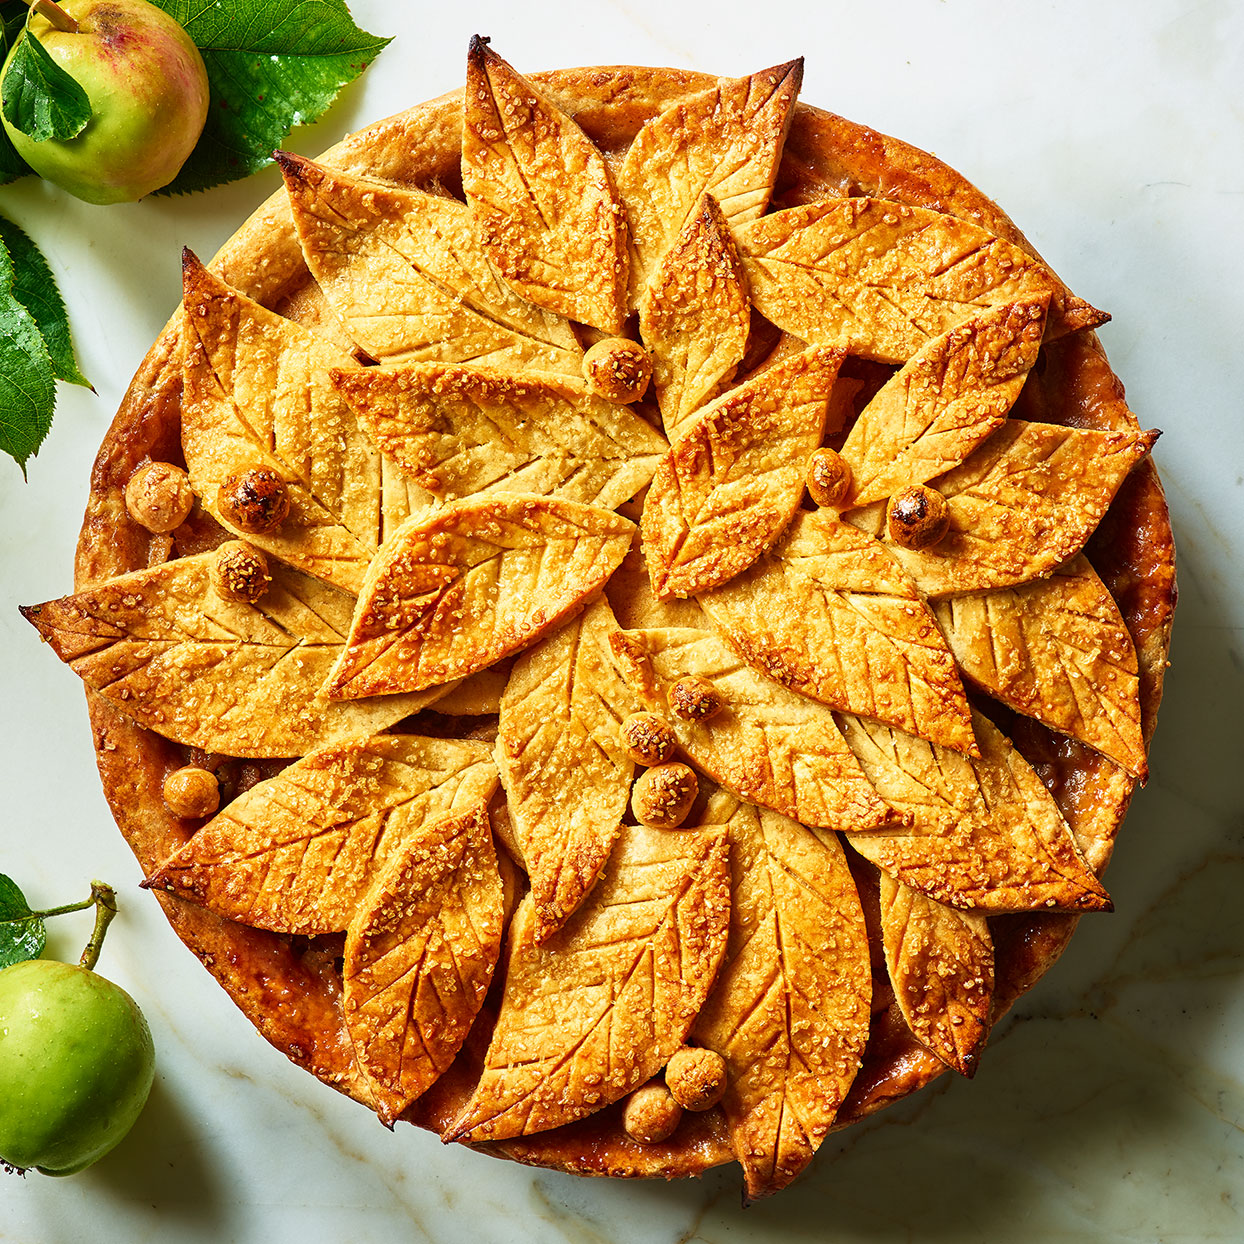 This homemade apple pie recipe has a simple and classic flavor, with fresh apples, spices and butter that's been sizzled until it's brown and nutty. The top crust is where you have the opportunity to add a touch of pizazz. Here we suggest cutting the dough into leaf shapes for an autumnal motif, but you could cut any shape you want.